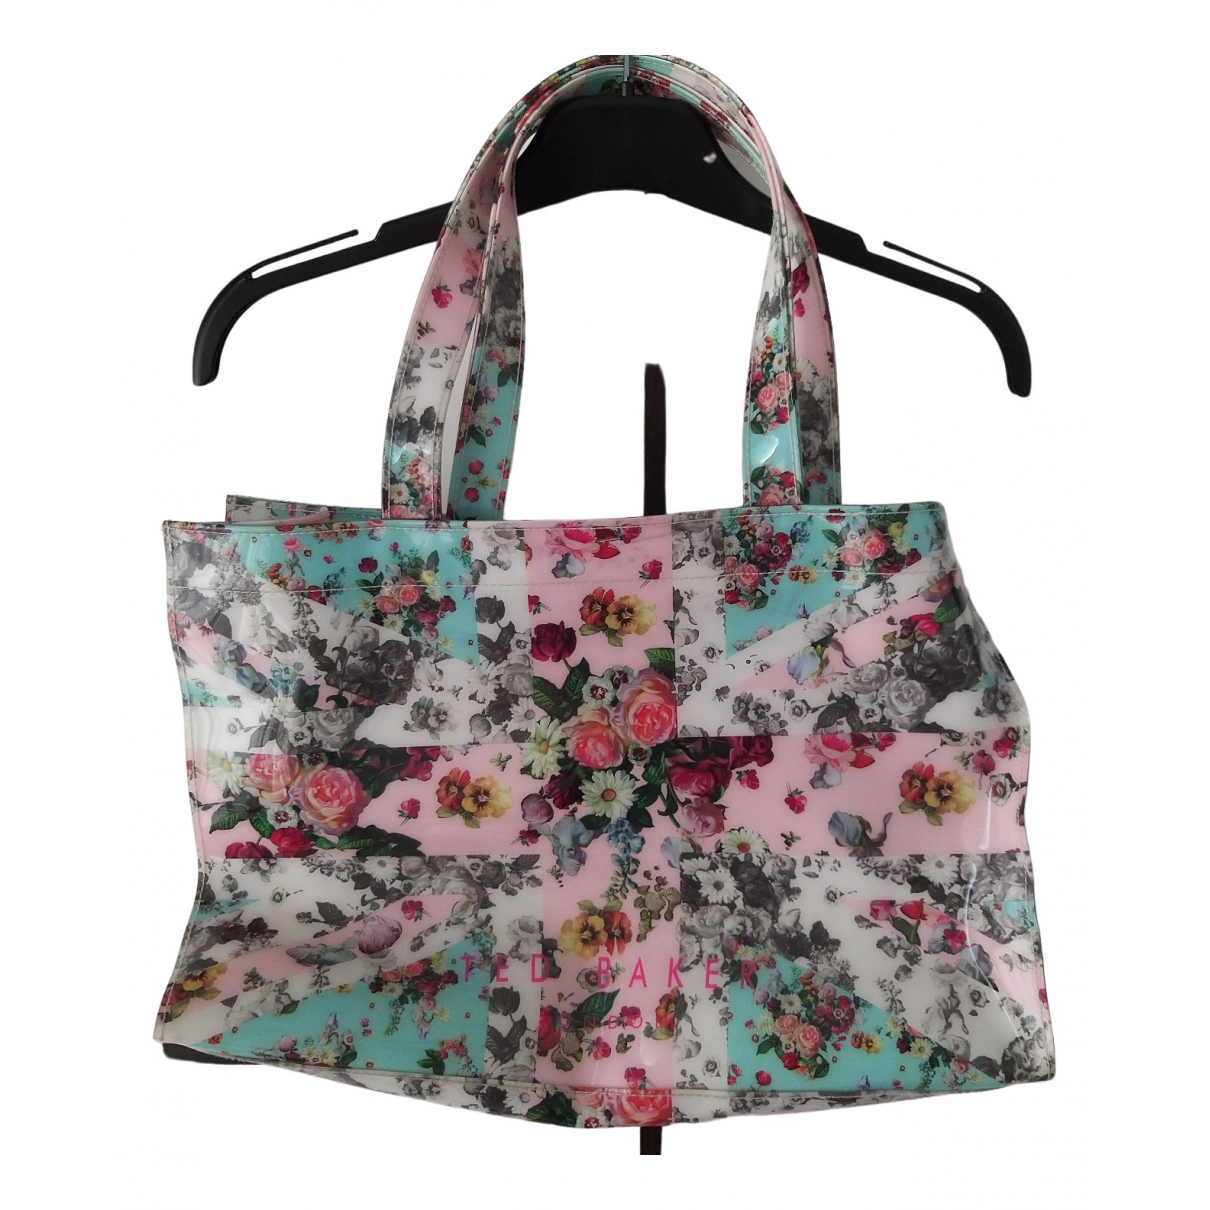 Ted Baker - Sac a main   pour femme